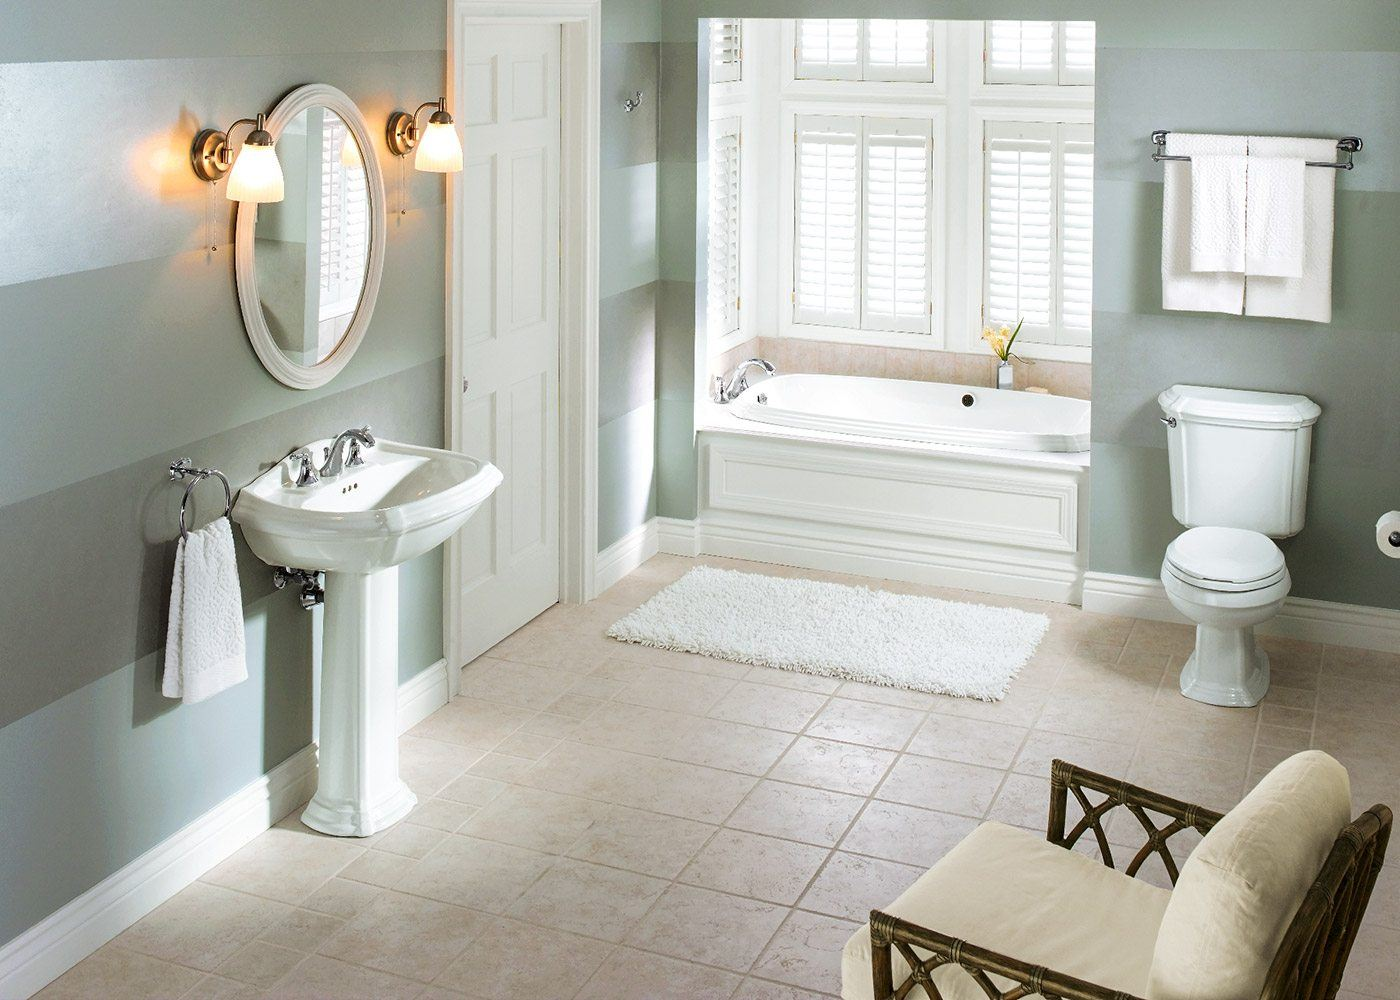 4 Important Components To Consider When Remodeling Your